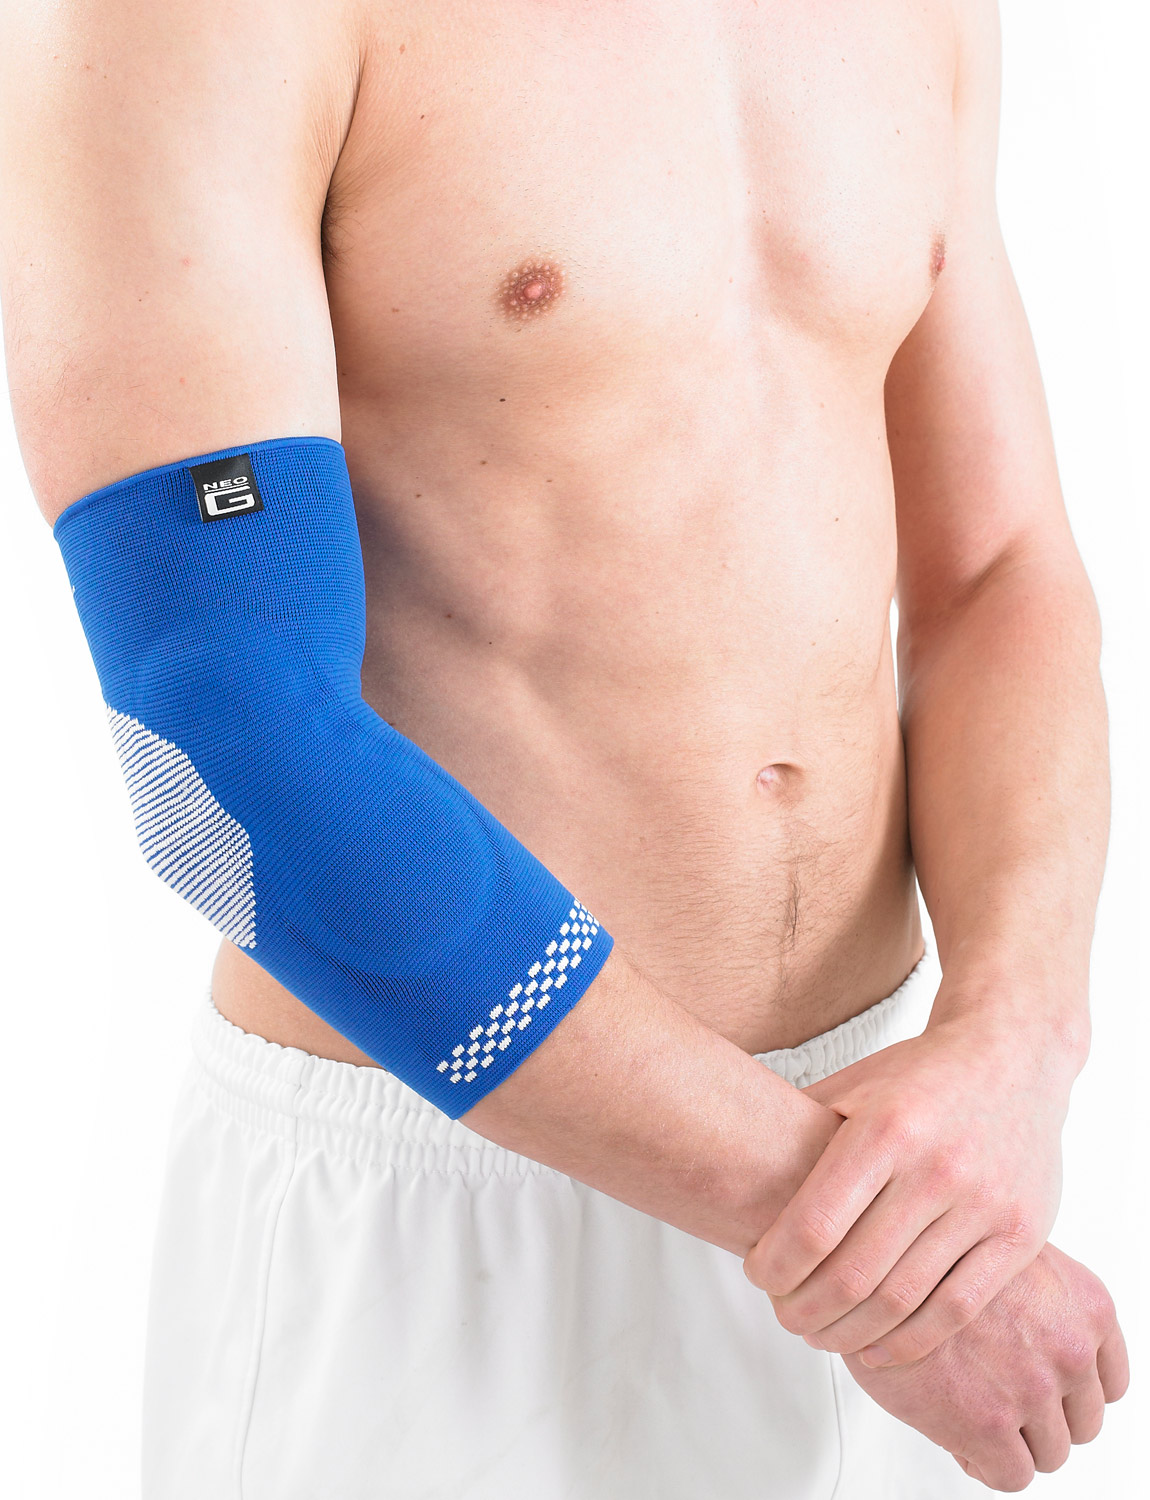 458 - AIRFLOW PLUS ELBOW SUPPORT WITH SILICONE JOINT CUSHIONS